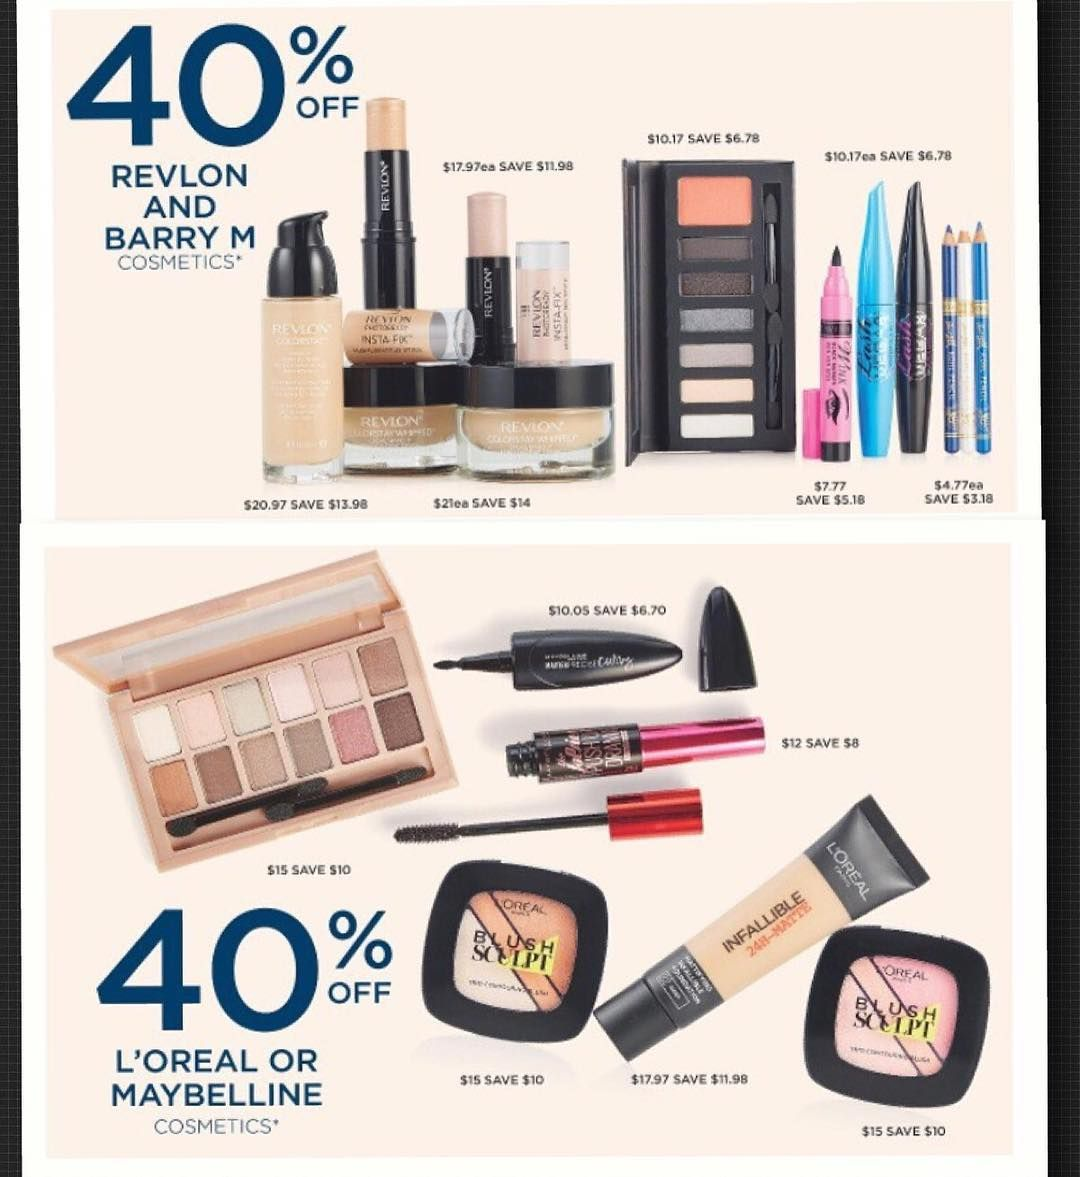 At @bigwaustralia you can get 40% off #cosmetics by #revlon #barrym #loreal #maybelline on sale until 3/8/16 . . . #makeupsale #cosmetics #lipstick #eyeshadow #mascara #blush #foundation #almosthalfprice #bigw #onsale #stockupprice #shopping #whypaymore #whypayfullprice #bargain #bargainmum #smartshopper #savvyshopper #savvysaver #aug16 #jul16